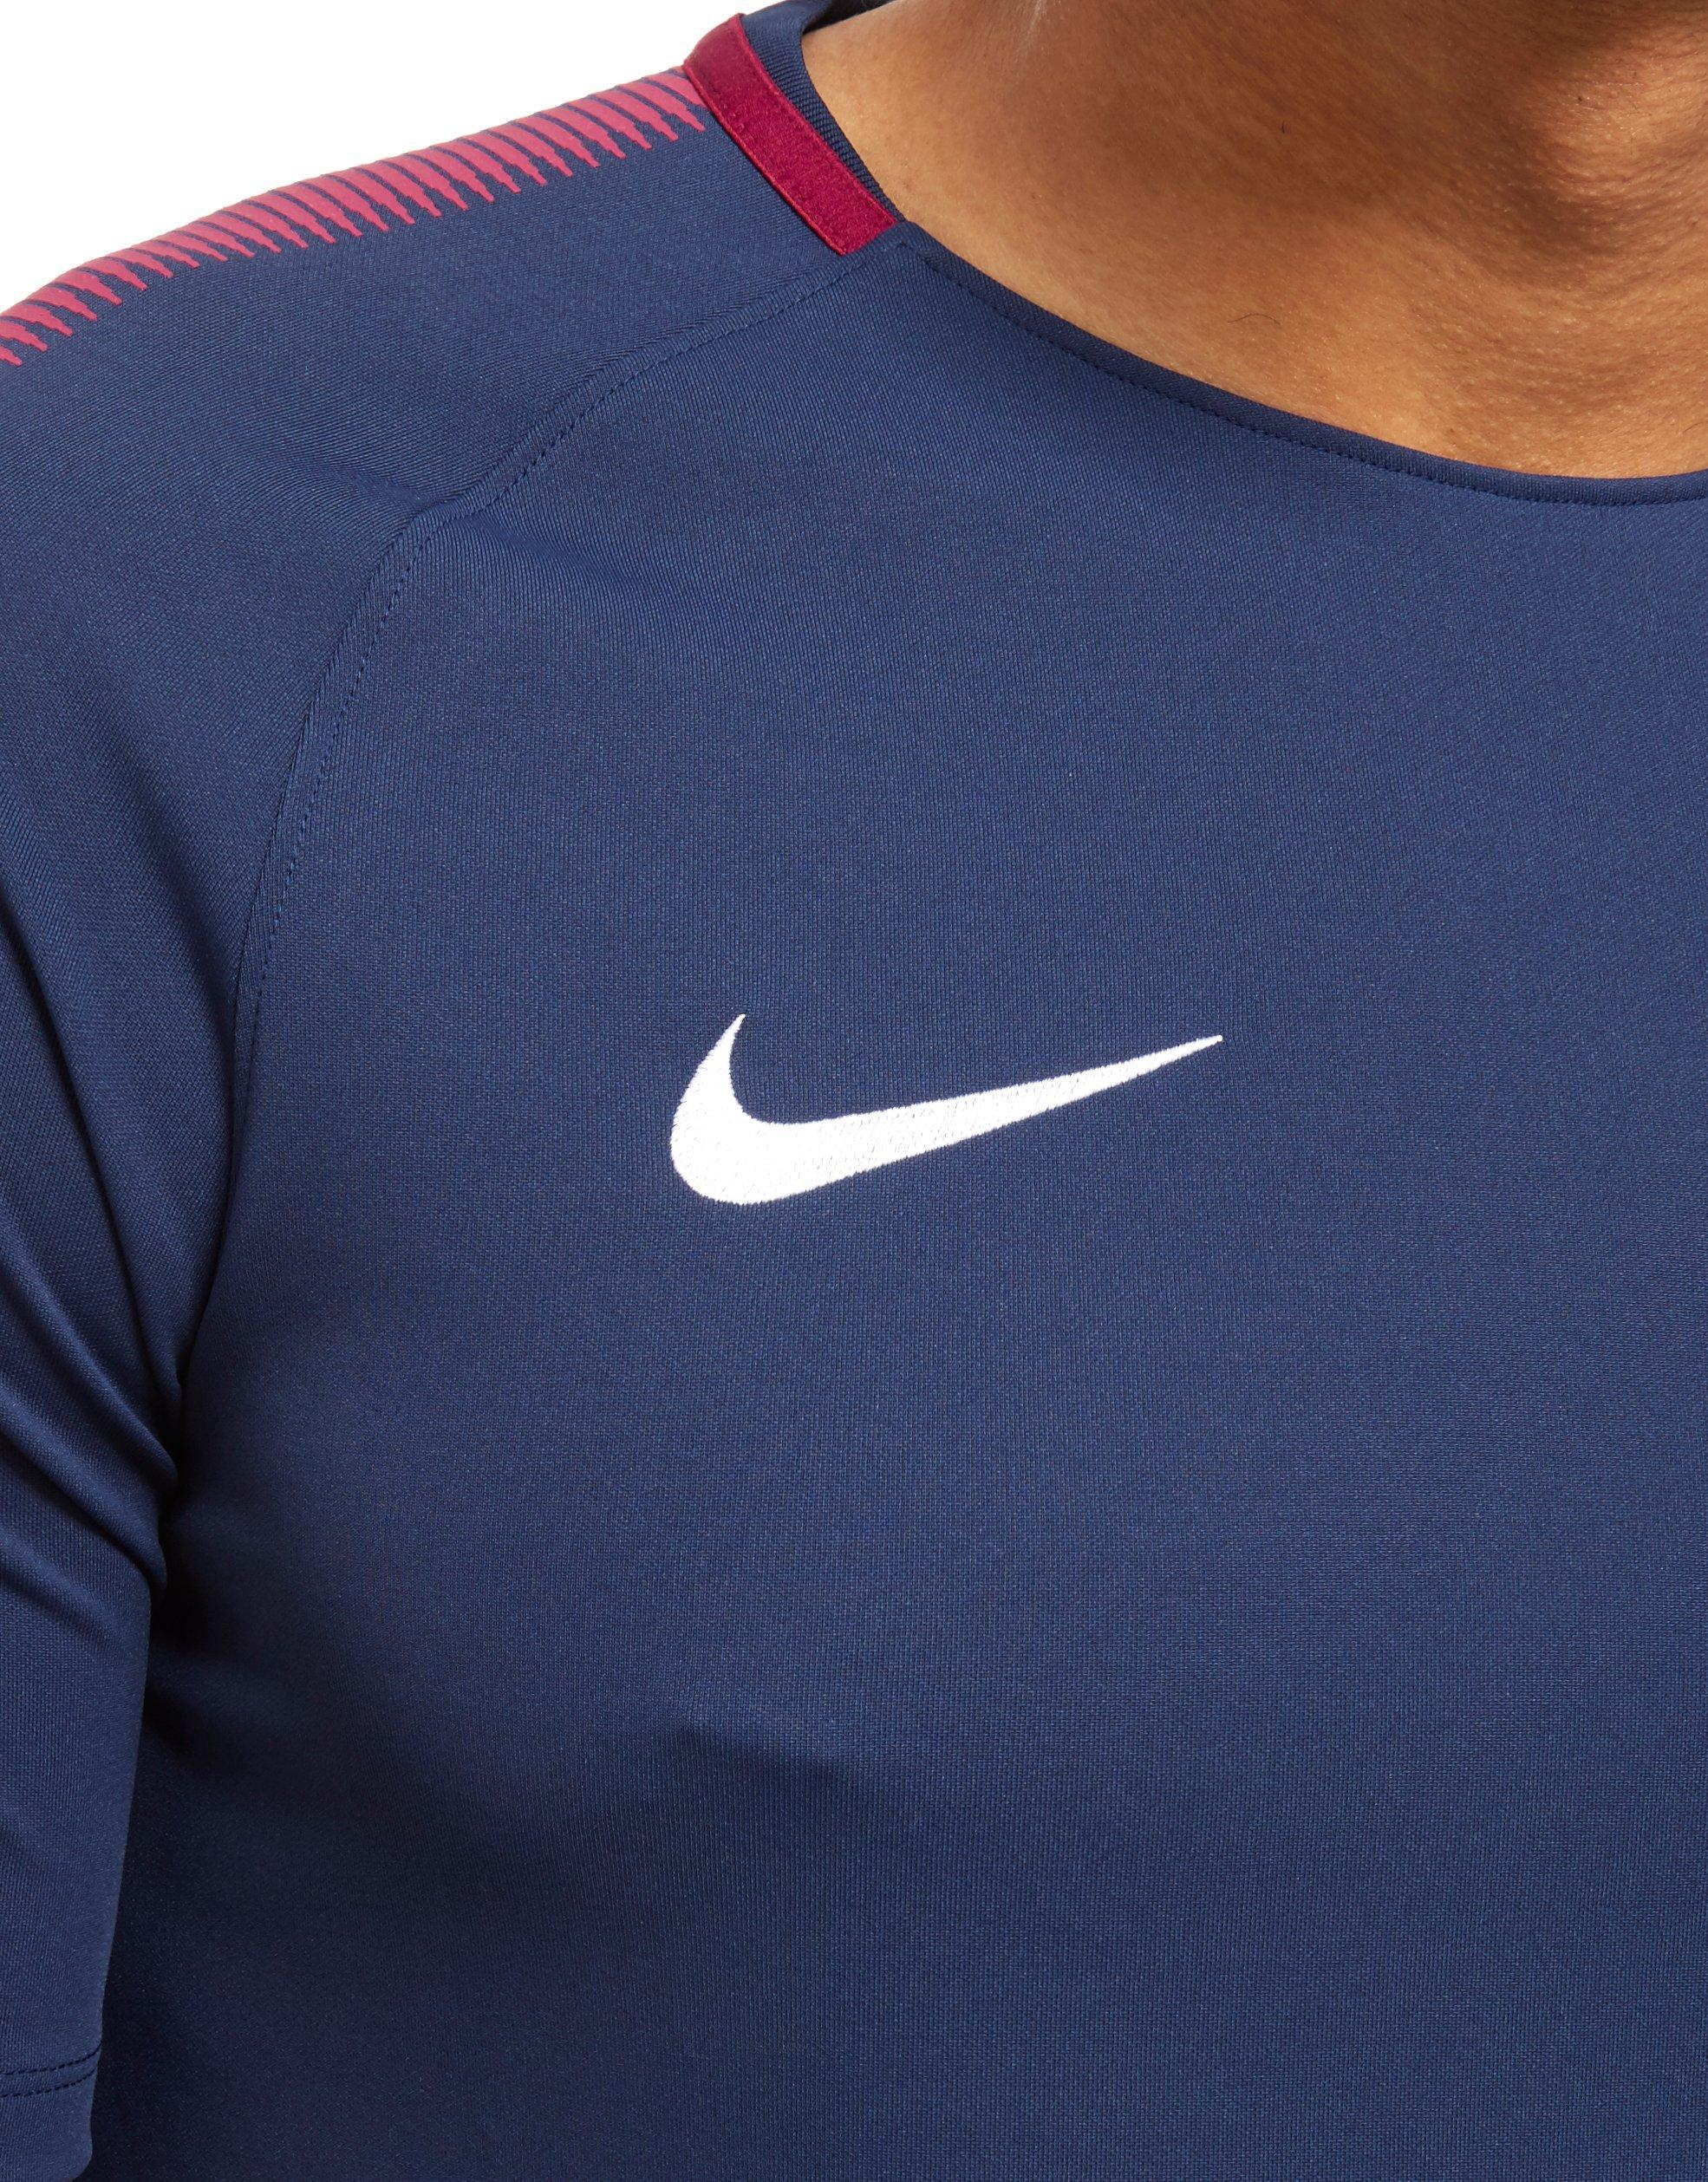 Nike Synthetic Manchester City Fc Training Jersey in Navy (Blue) for Men